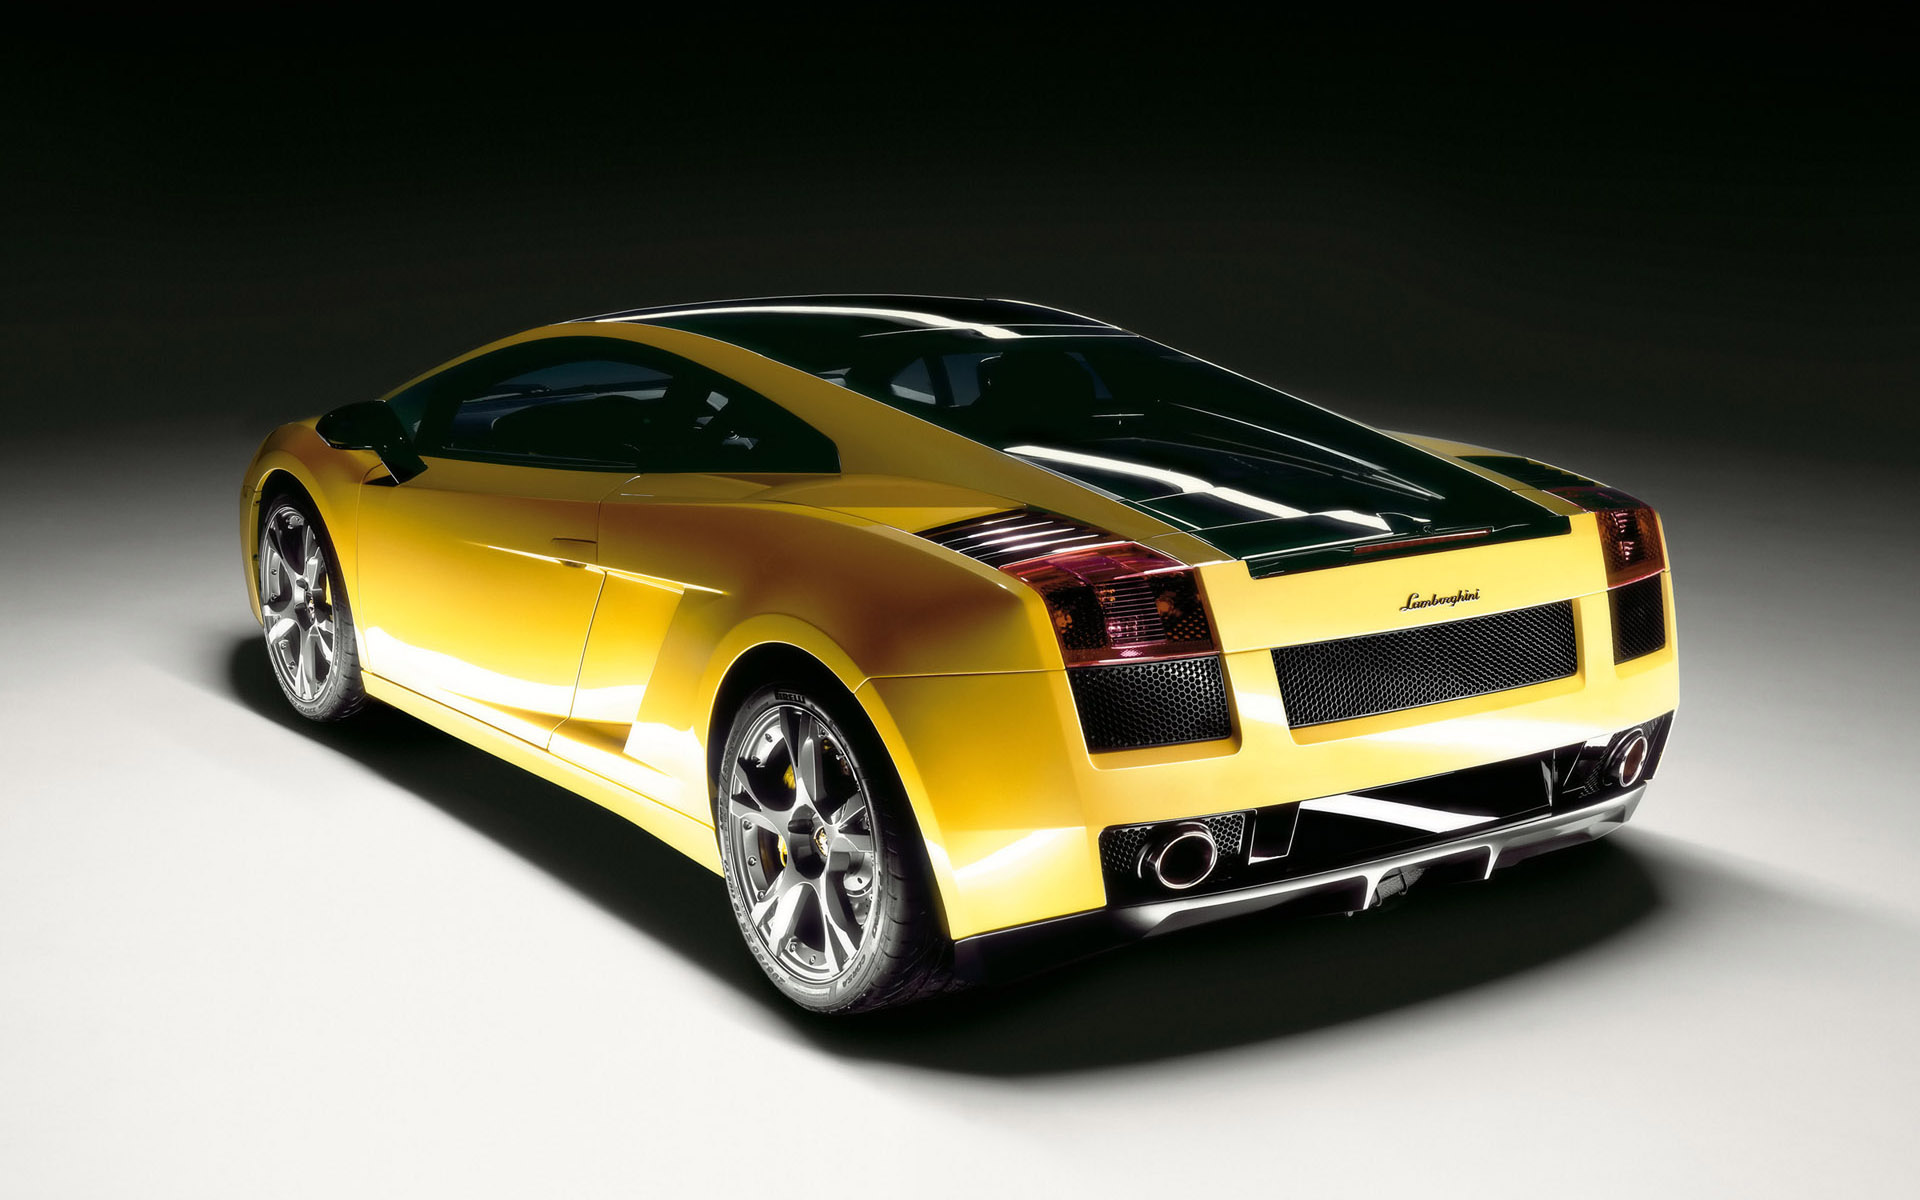 Lamborghini Gallardo 2006 wallpaper